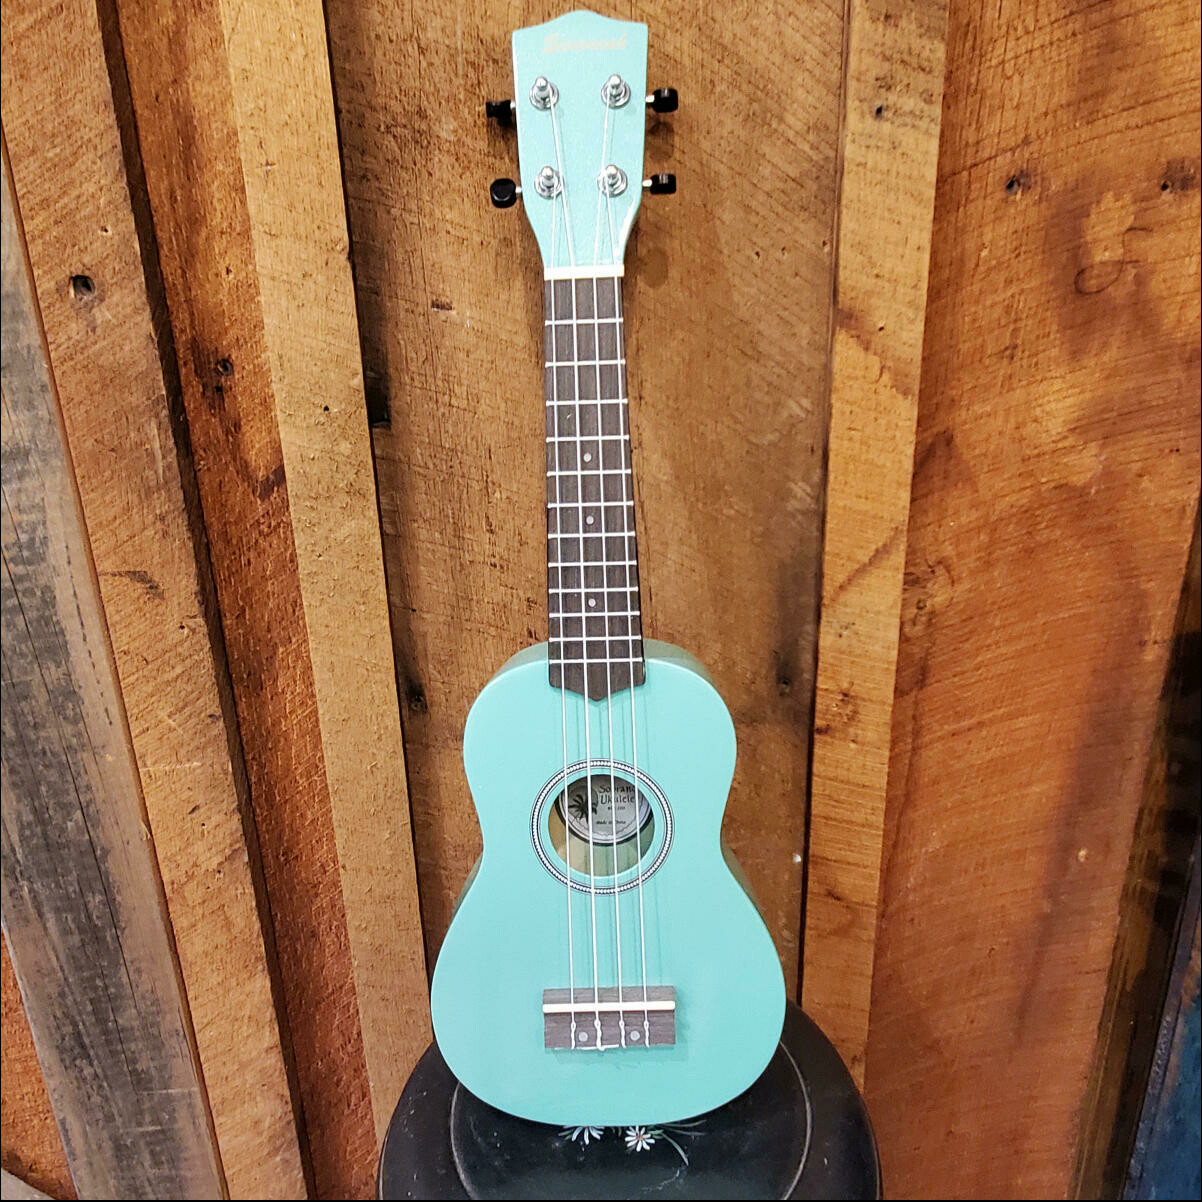 Savannah Green Ukulele